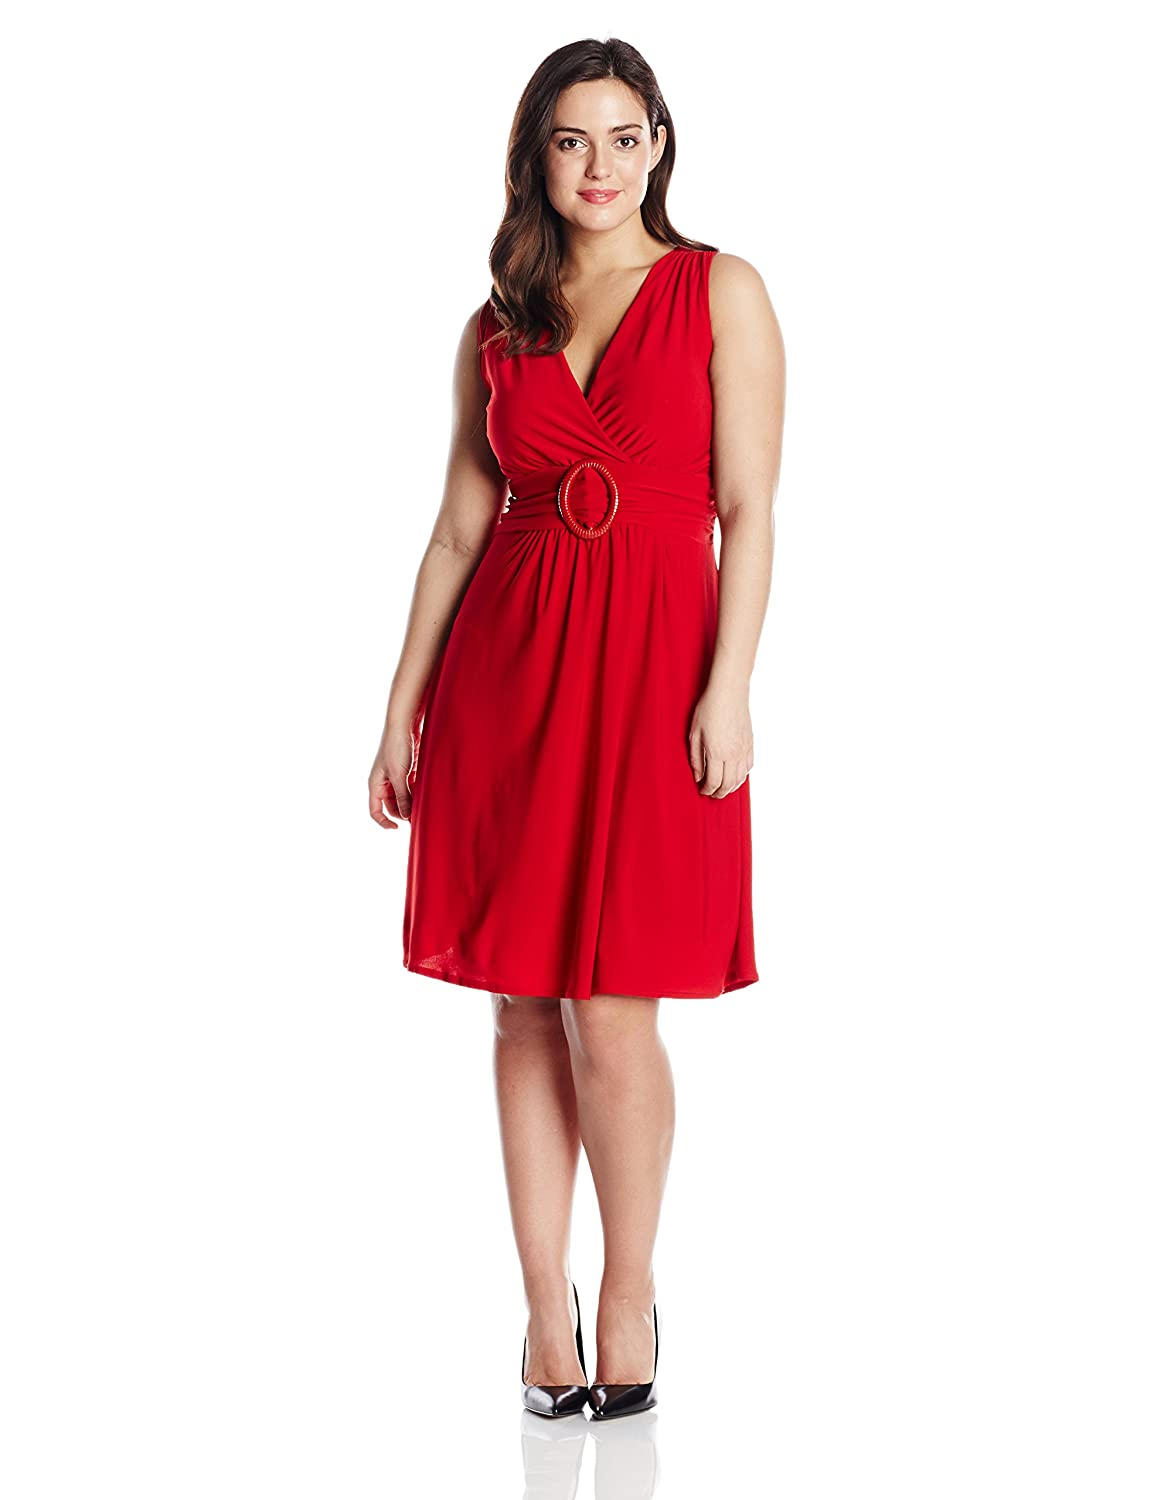 Star Vixen Women's Plus-Size Sleeveless O-Ring Dress Star Vixen Child Code 1350-ITX